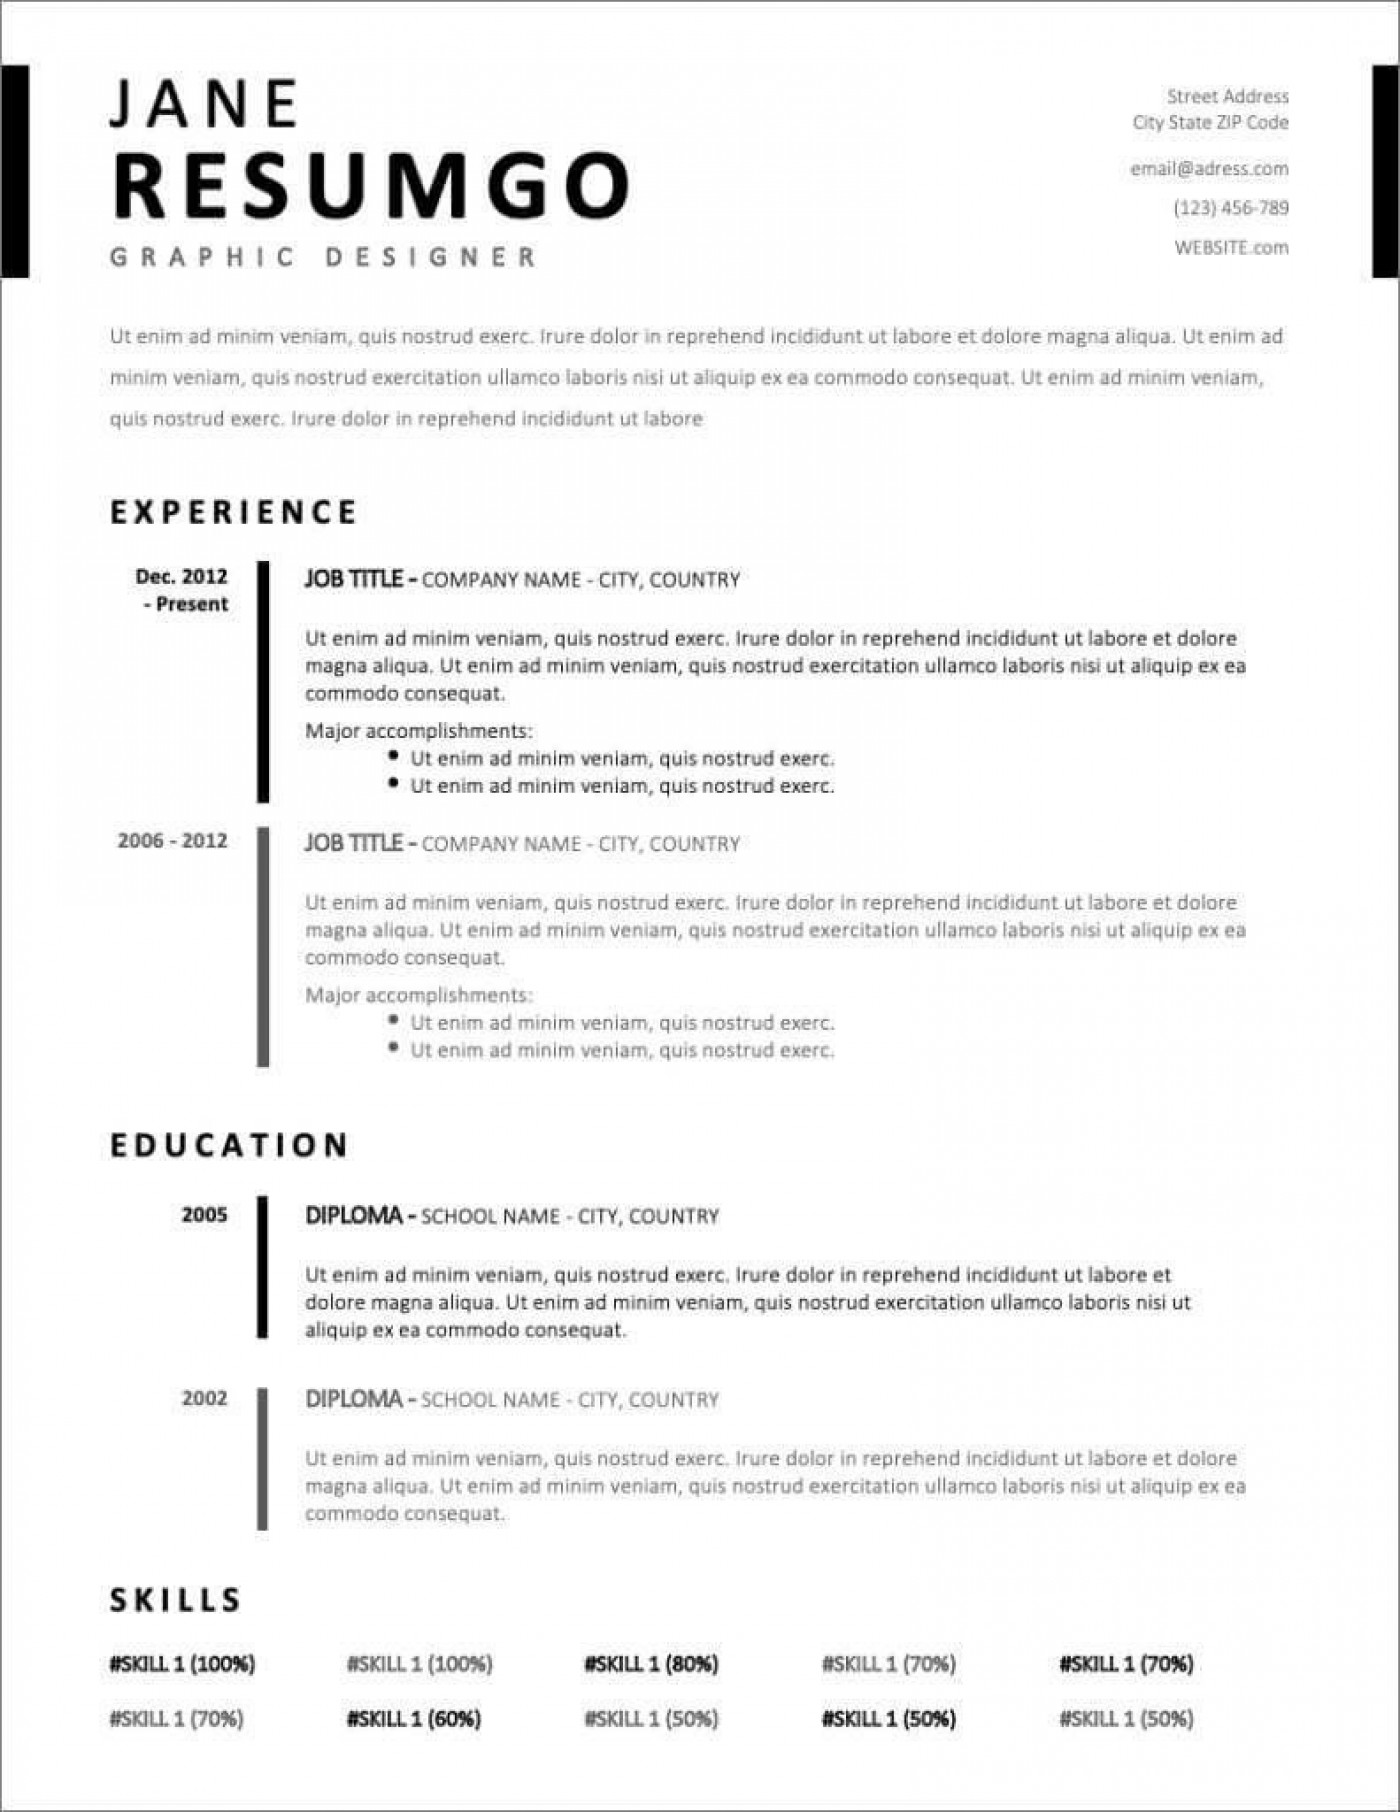 005 Fearsome Free Basic Resume Template High Def  Sample Download For Fresher Microsoft Word 20071400